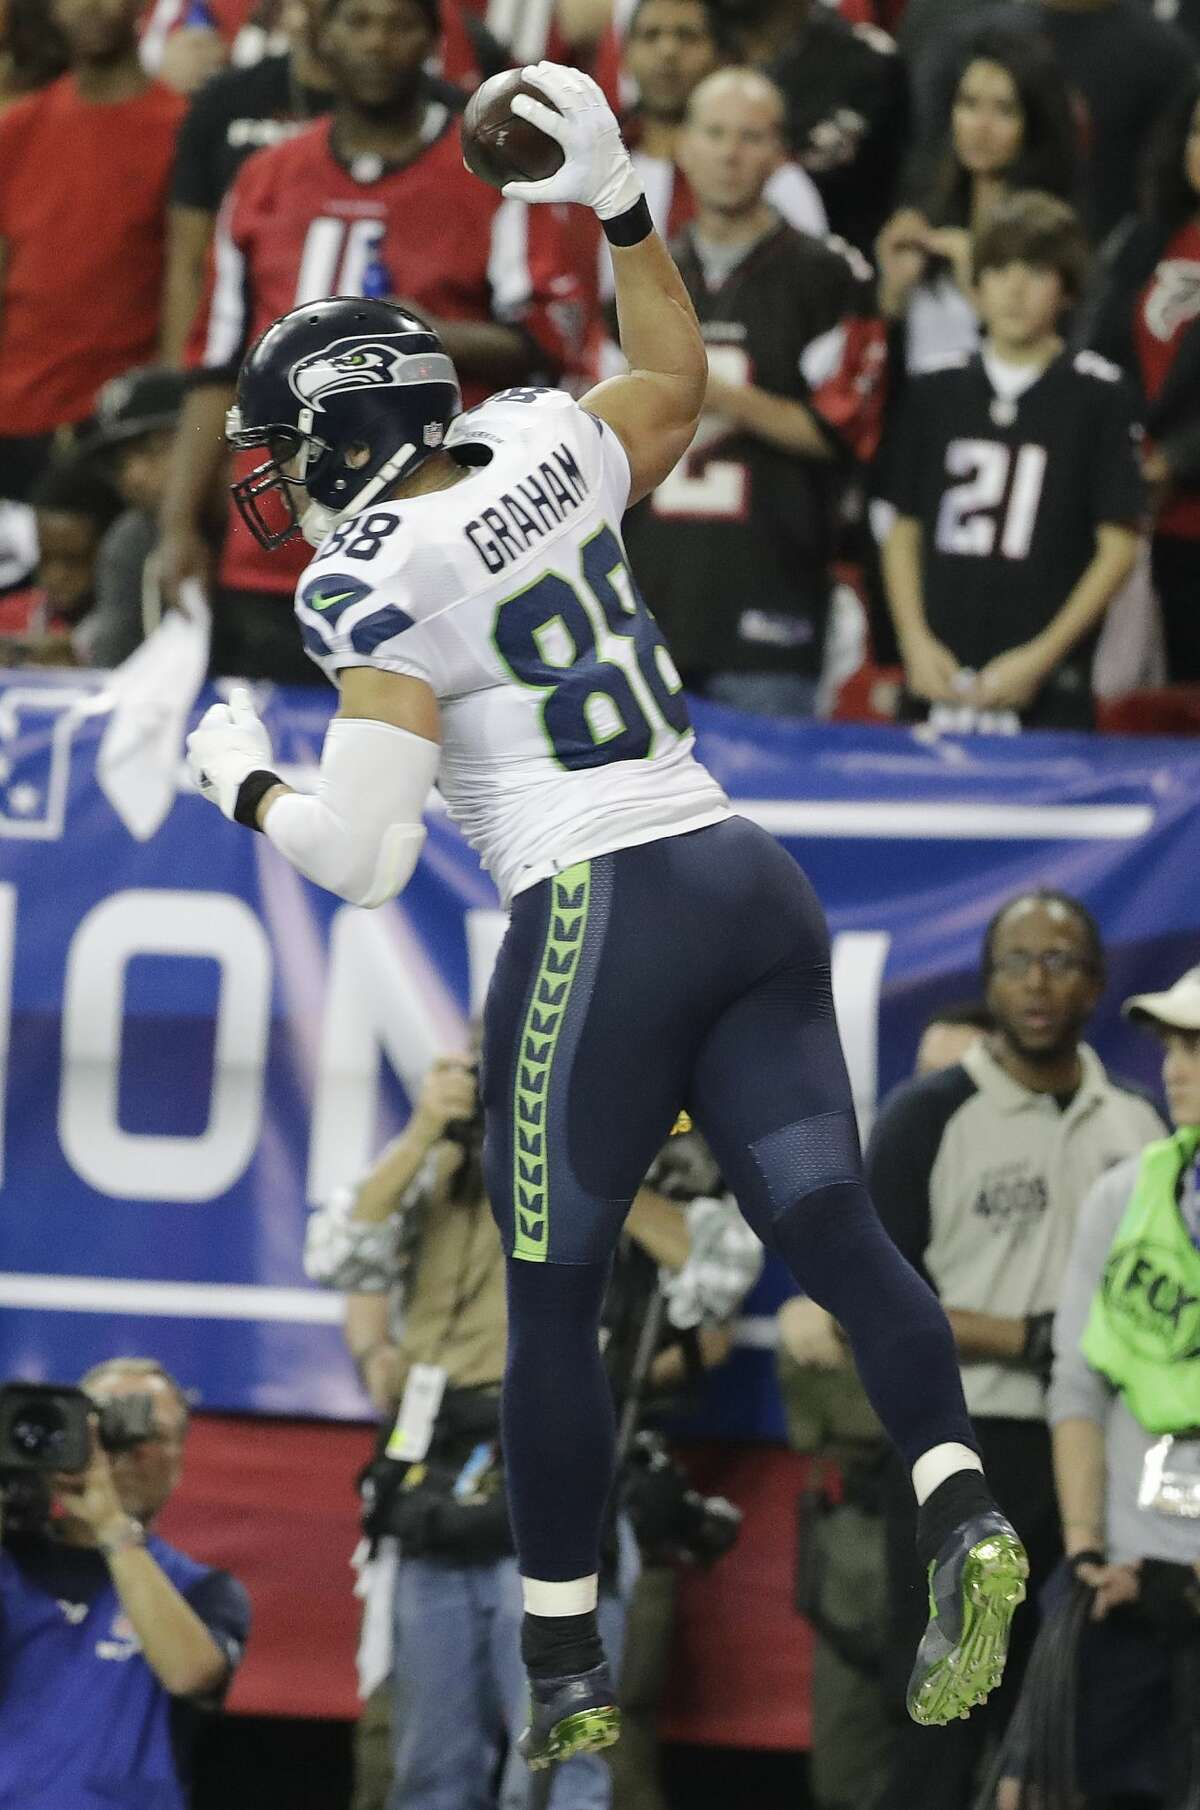 And just a little bit more from Farrar, on Jimmy Graham: The guy who could put this rotation over the top, of course, is Jimmy Graham-if the coaching staff finally unleashes him as the weapon he proved to be with the Saints. Graham got off to a slow start as he was recovering from a torn patellar tendon, but he showed enough potential through his second season in Seattle, despite schematic limitations. He's a gifted contested-catch target.